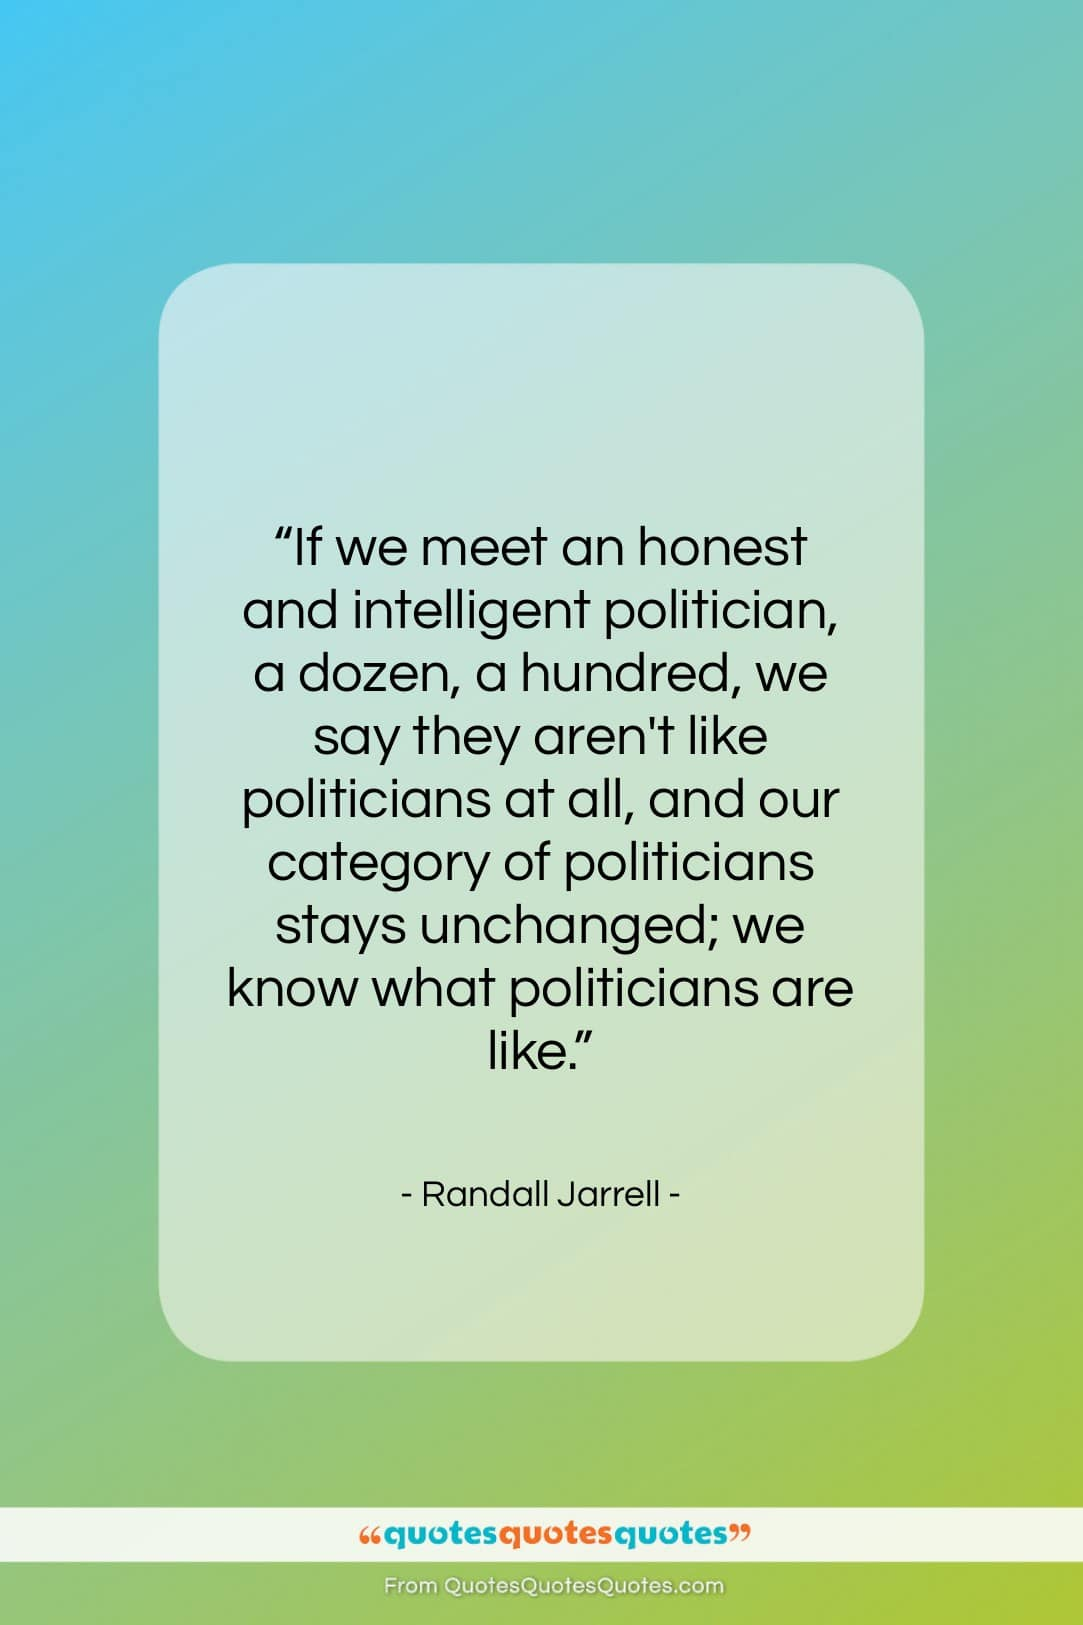 """Randall Jarrell quote: """"If we meet an honest and intelligent…""""- at QuotesQuotesQuotes.com"""